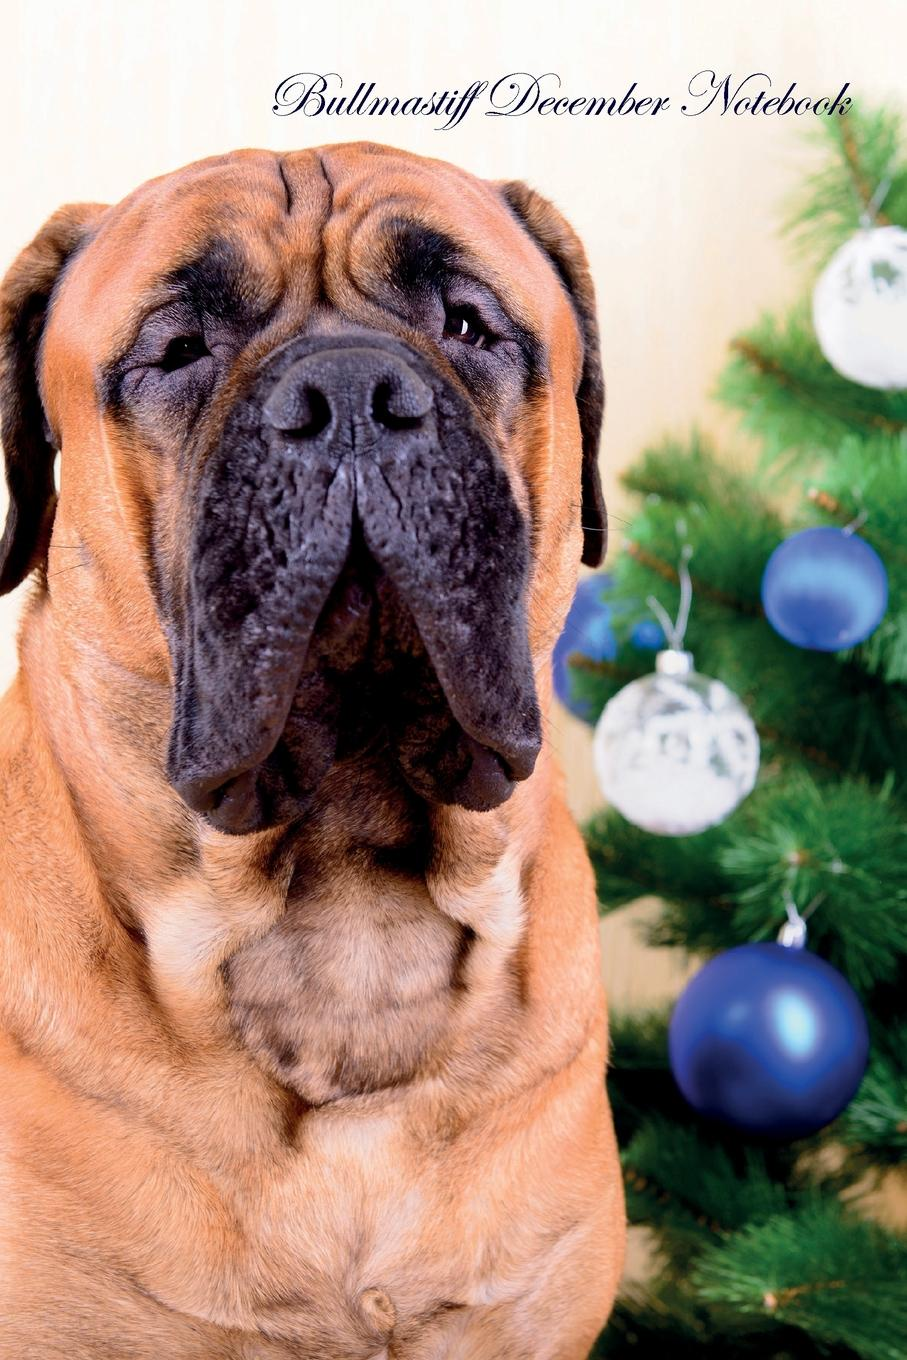 Mastiff World Bullmastiff December Notebook Bullmastiff Record, Log, Diary, Special Memories, To Do List, Academic Notepad, Scrapbook . More кресло recardo junior d12